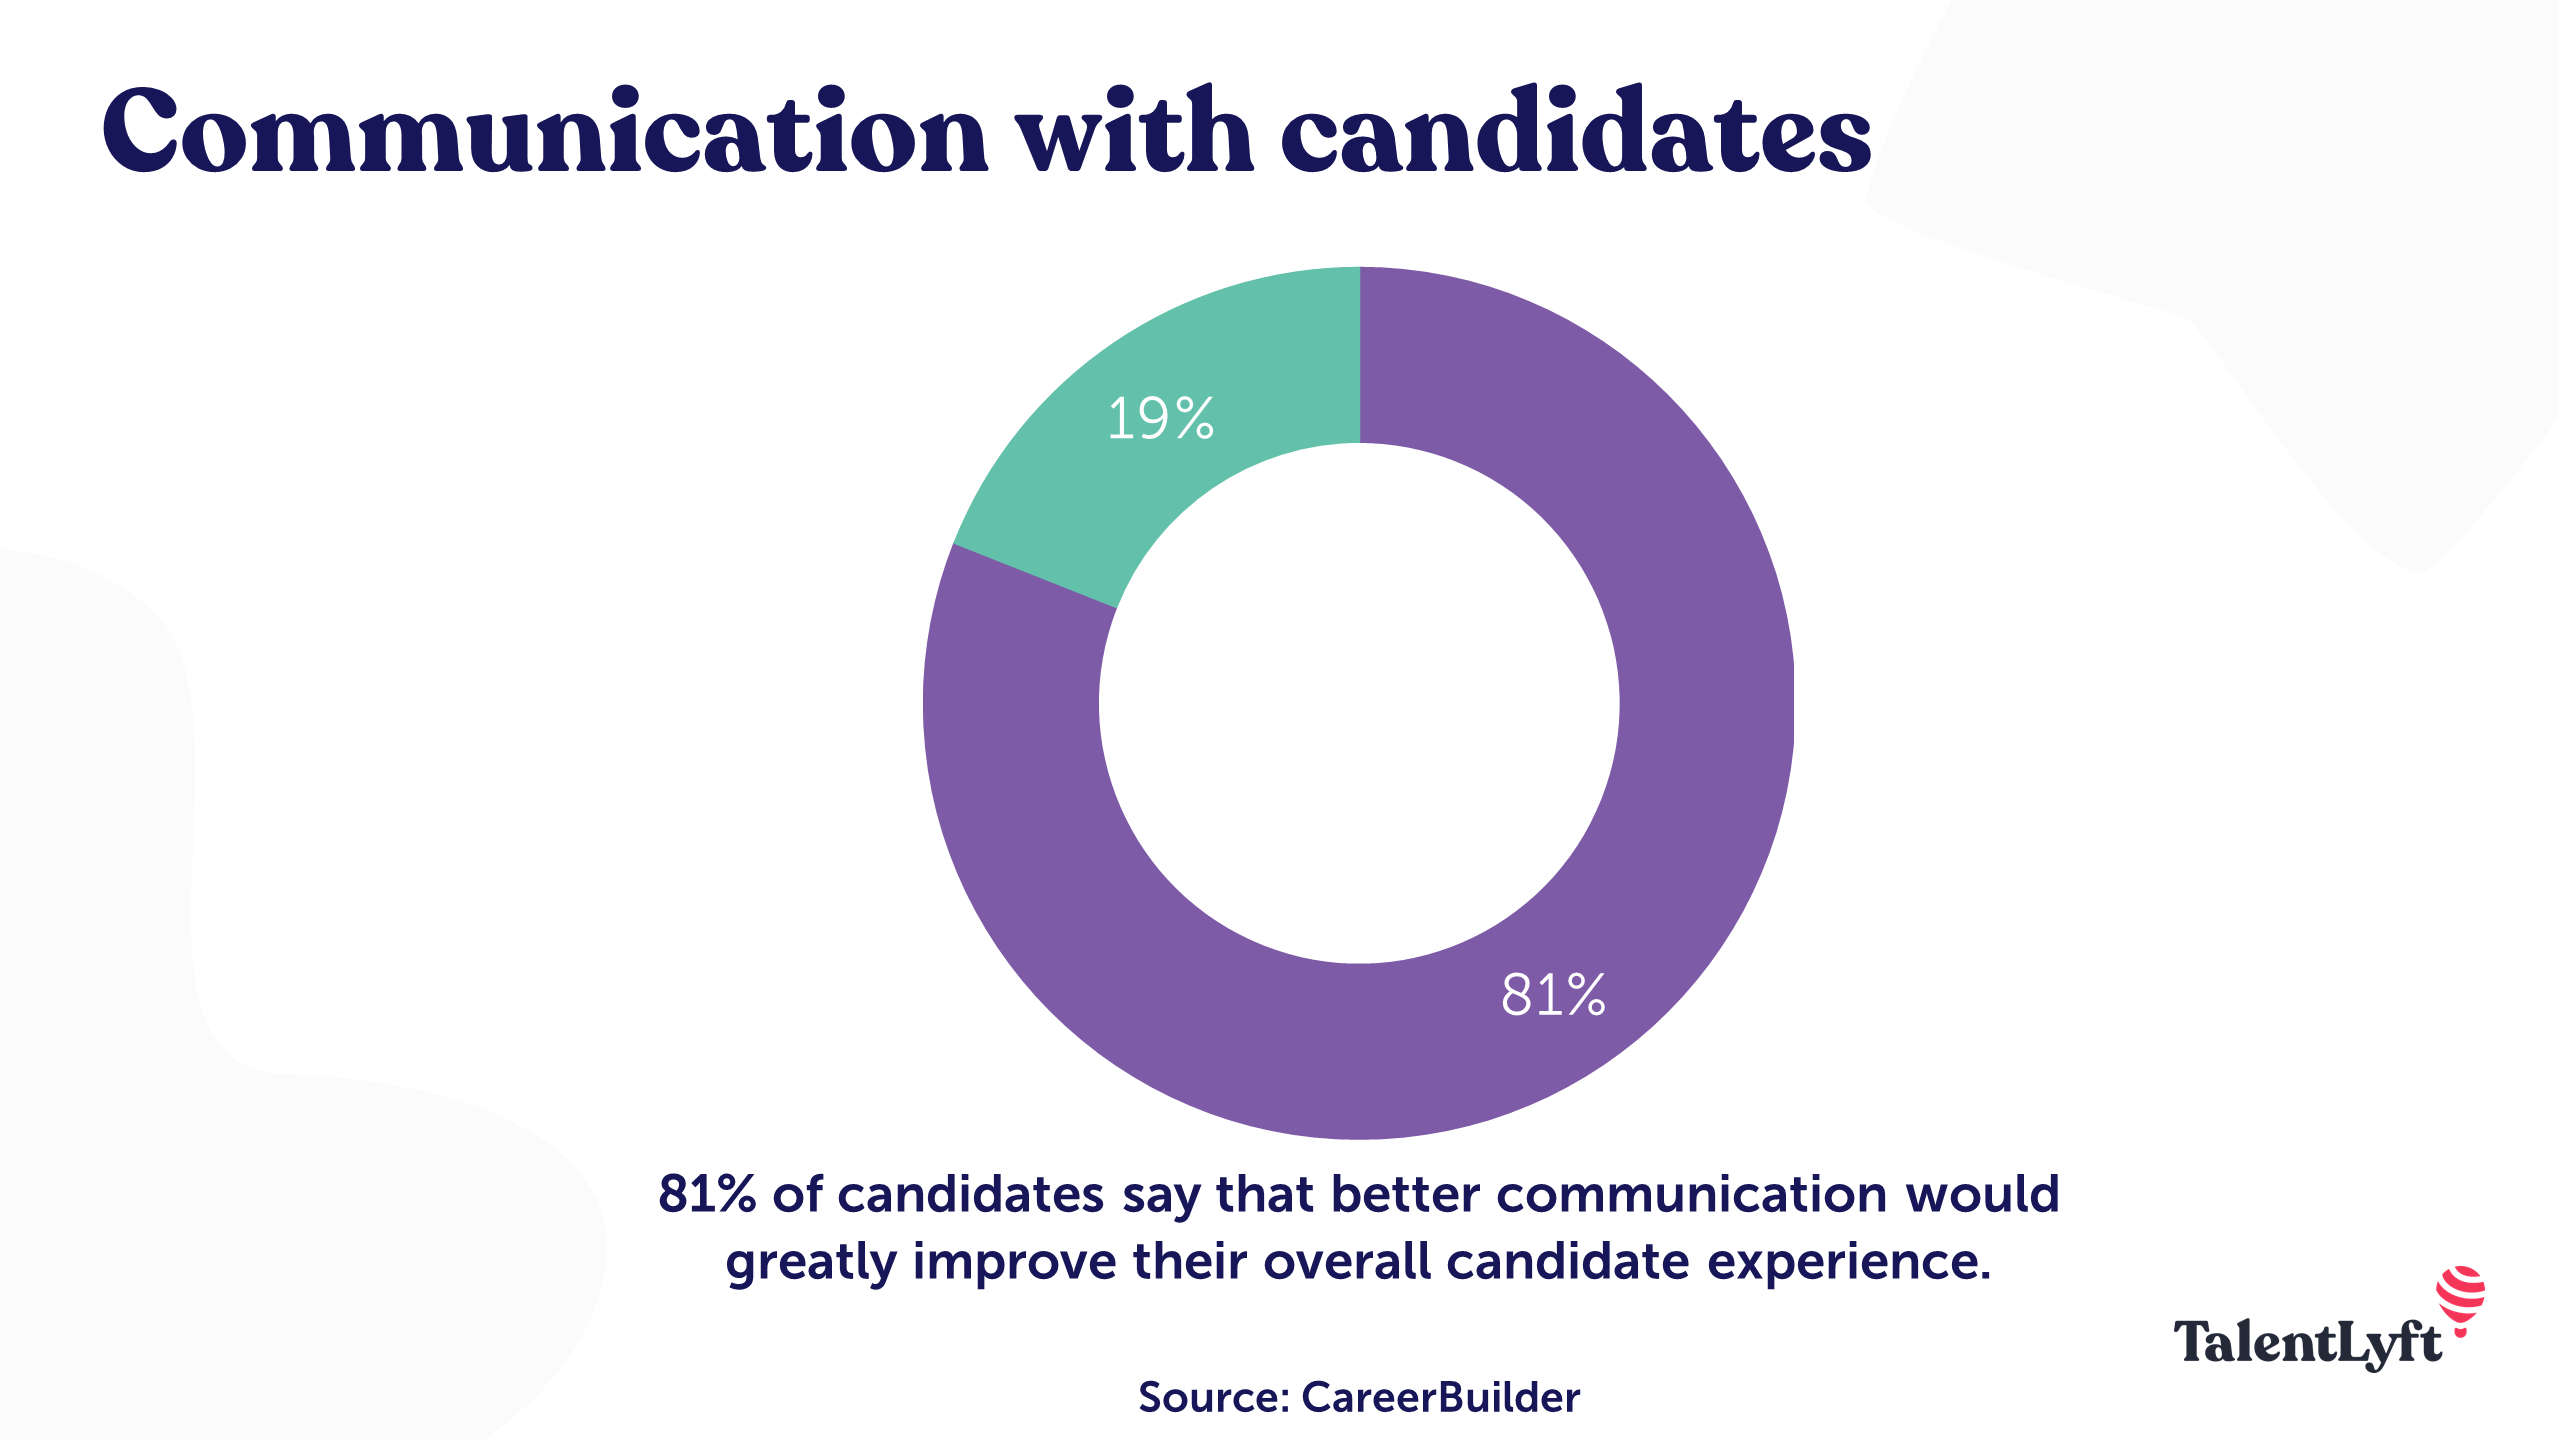 Communication with candidates